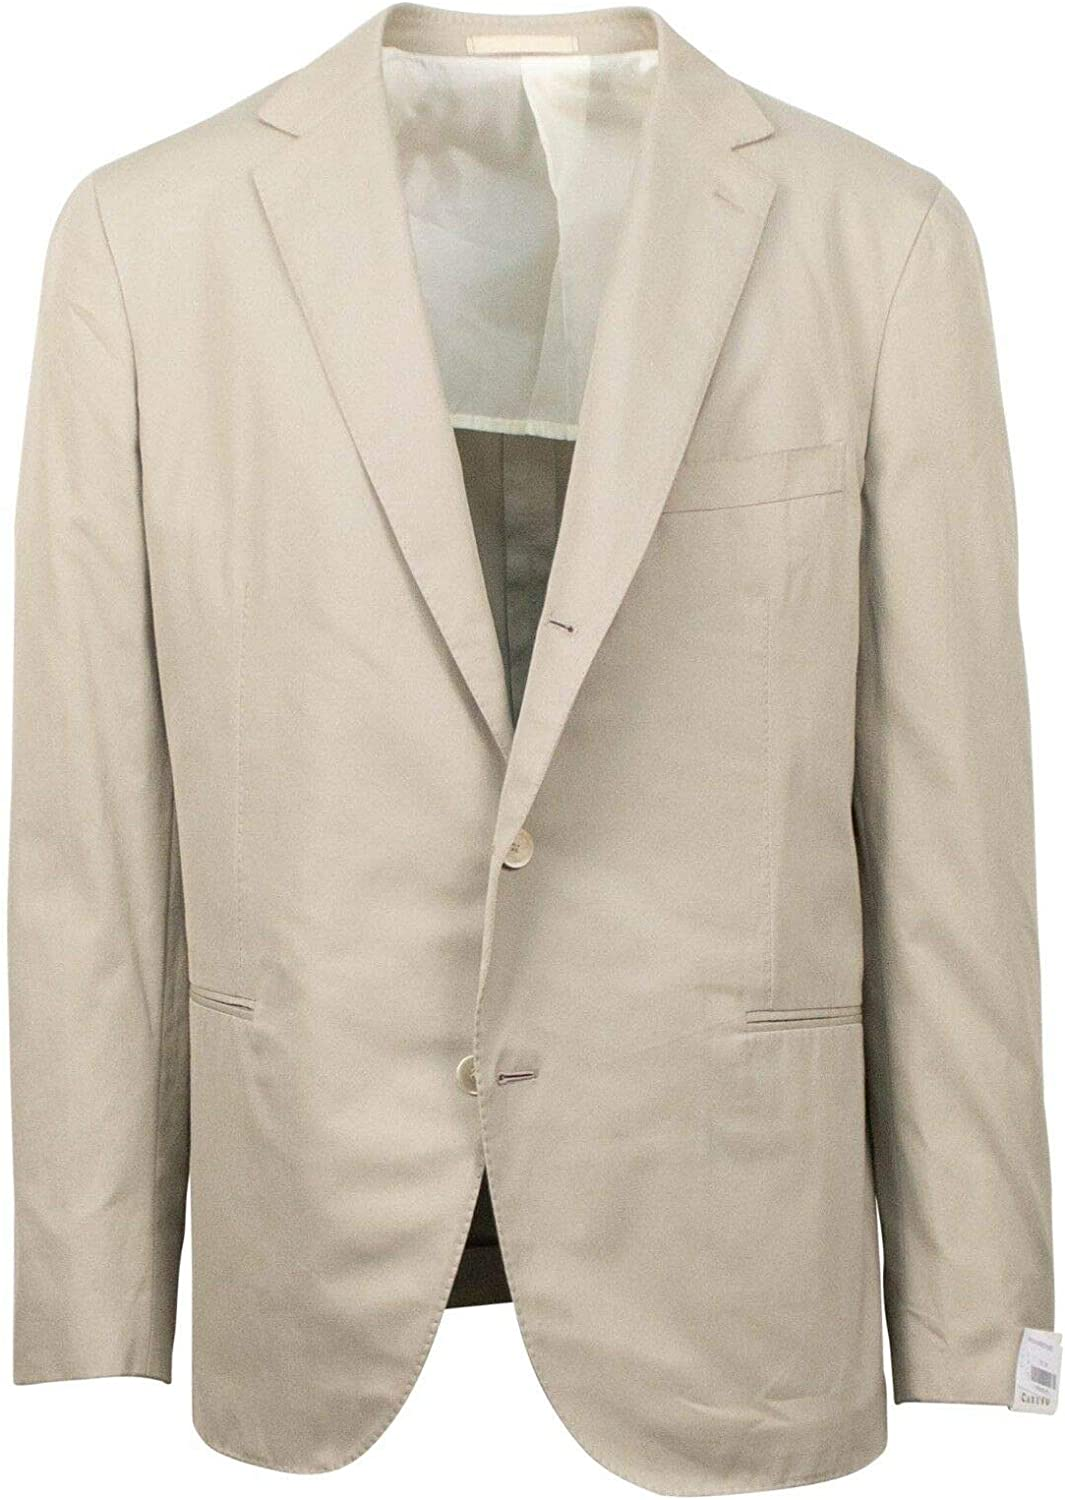 Caruso Men's Wool Blend 3 Roll 2 Button Classic Fit Suit 50/ R Drop 6 40 Gray